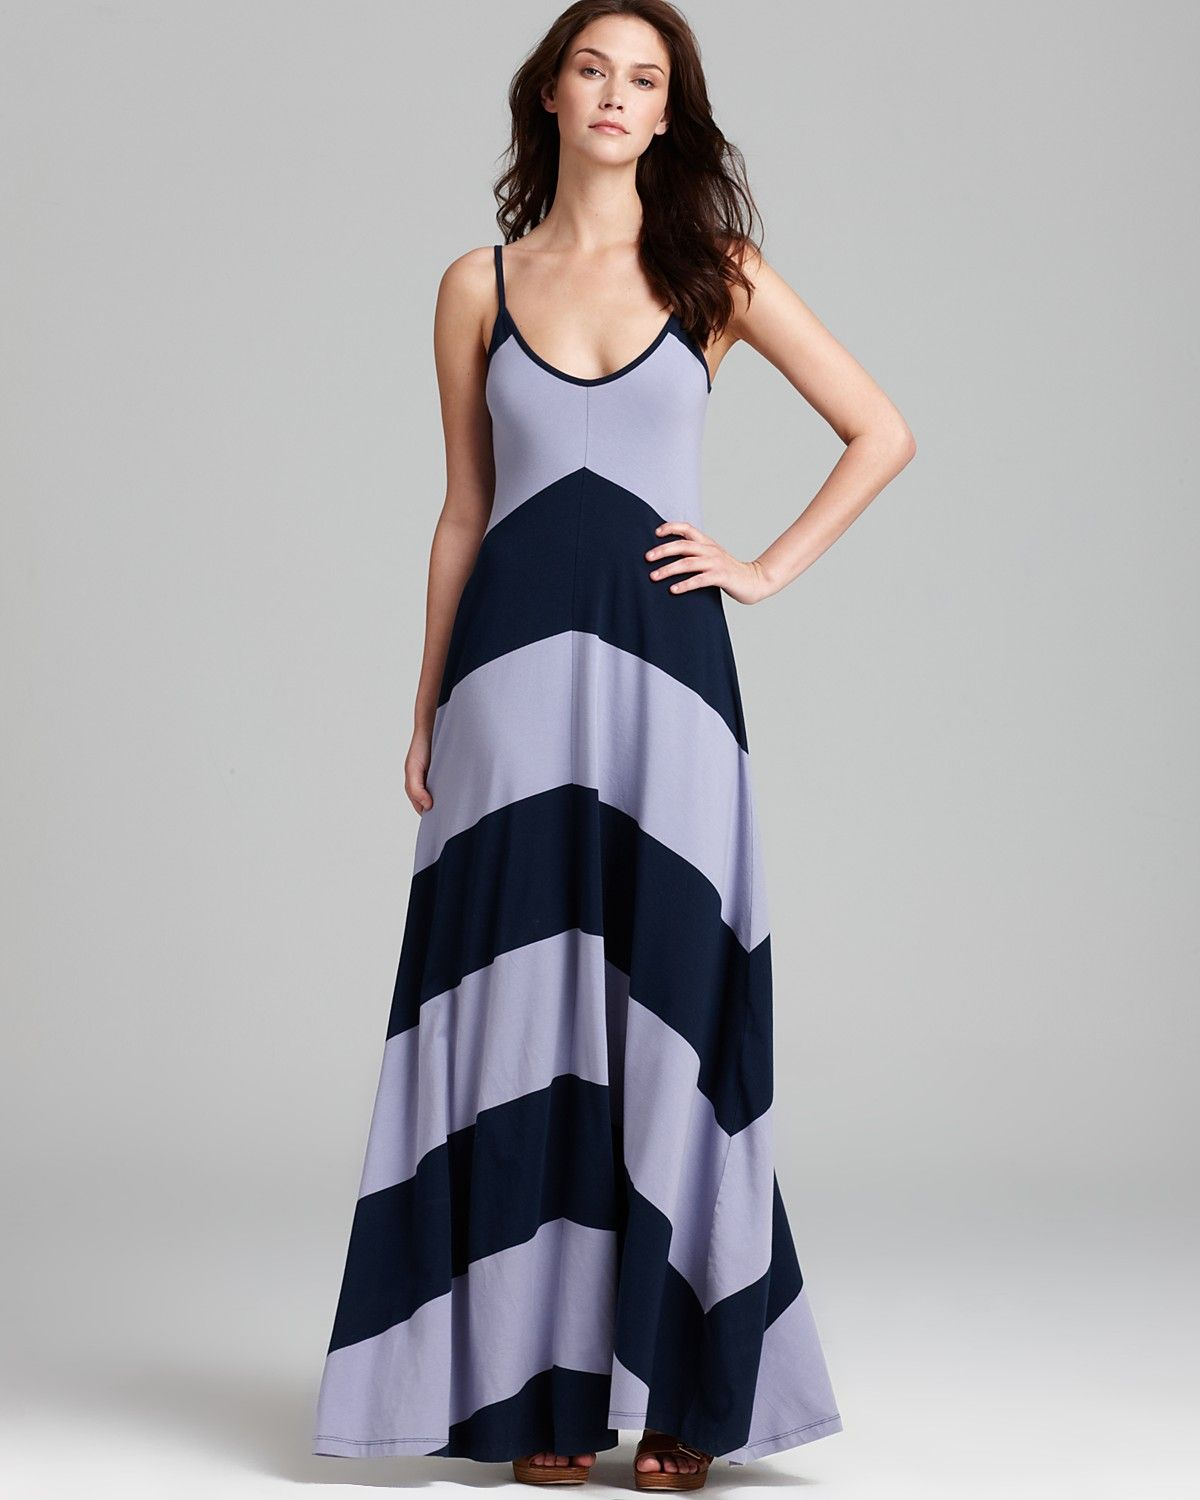 French connection maxi dress bold block chevron jersey